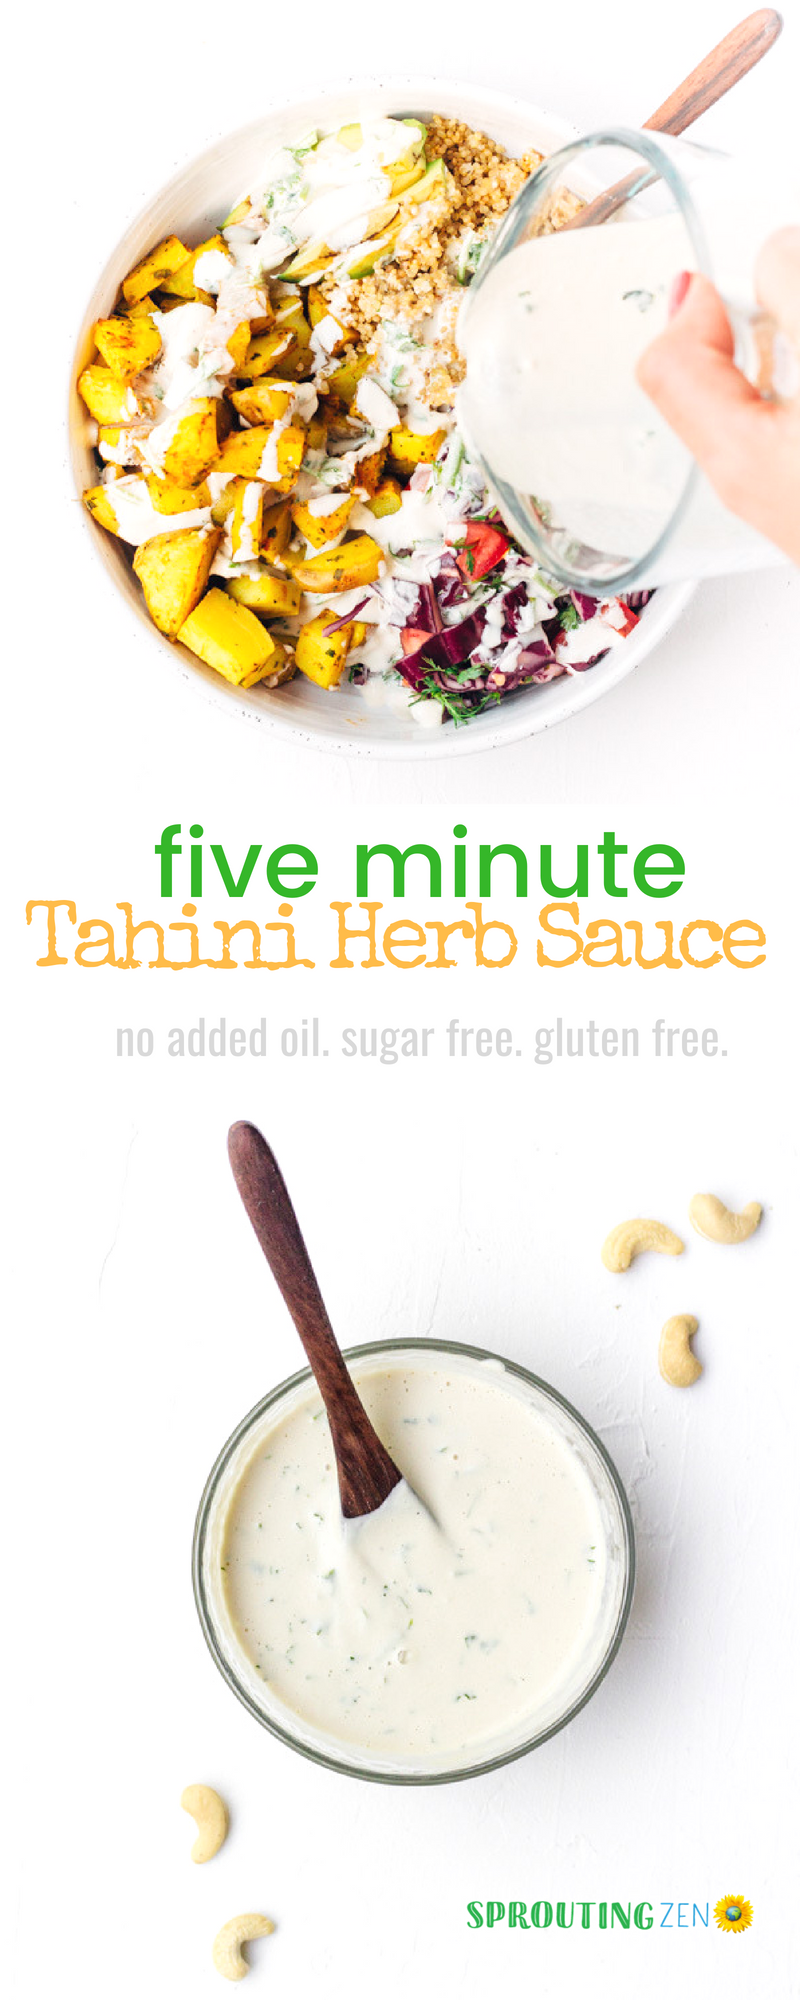 Tasty homemade vegan tahini herb dressing that's ready in under five minutes and with no added oil. #vegan #plantbased | Sprouting Zen